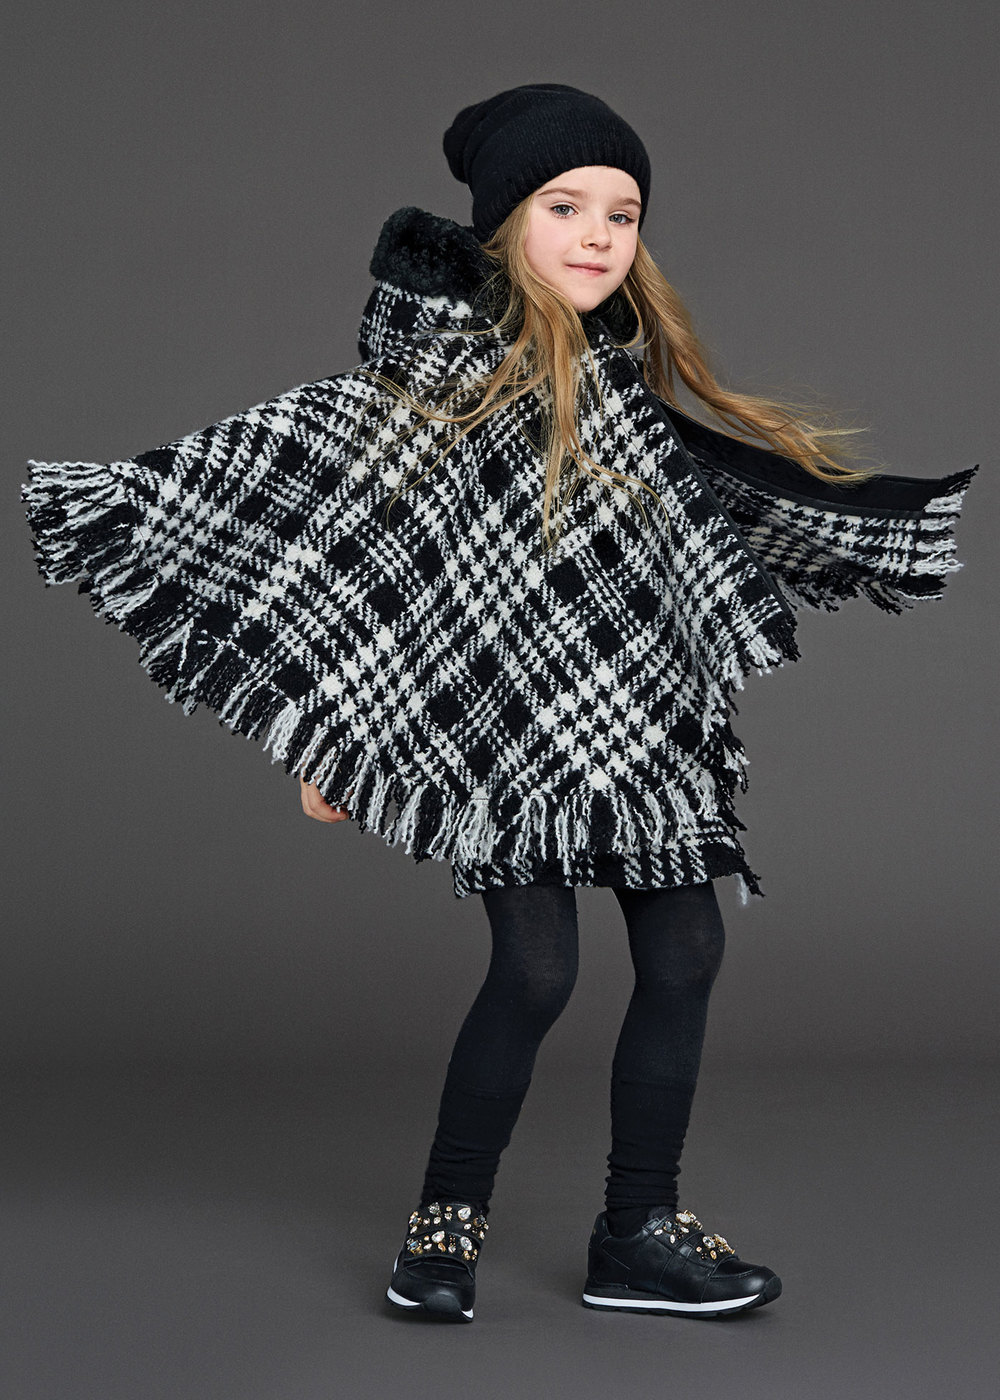 dolce-and-gabbana-winter-2016-child-collection-25-zoom.jpg